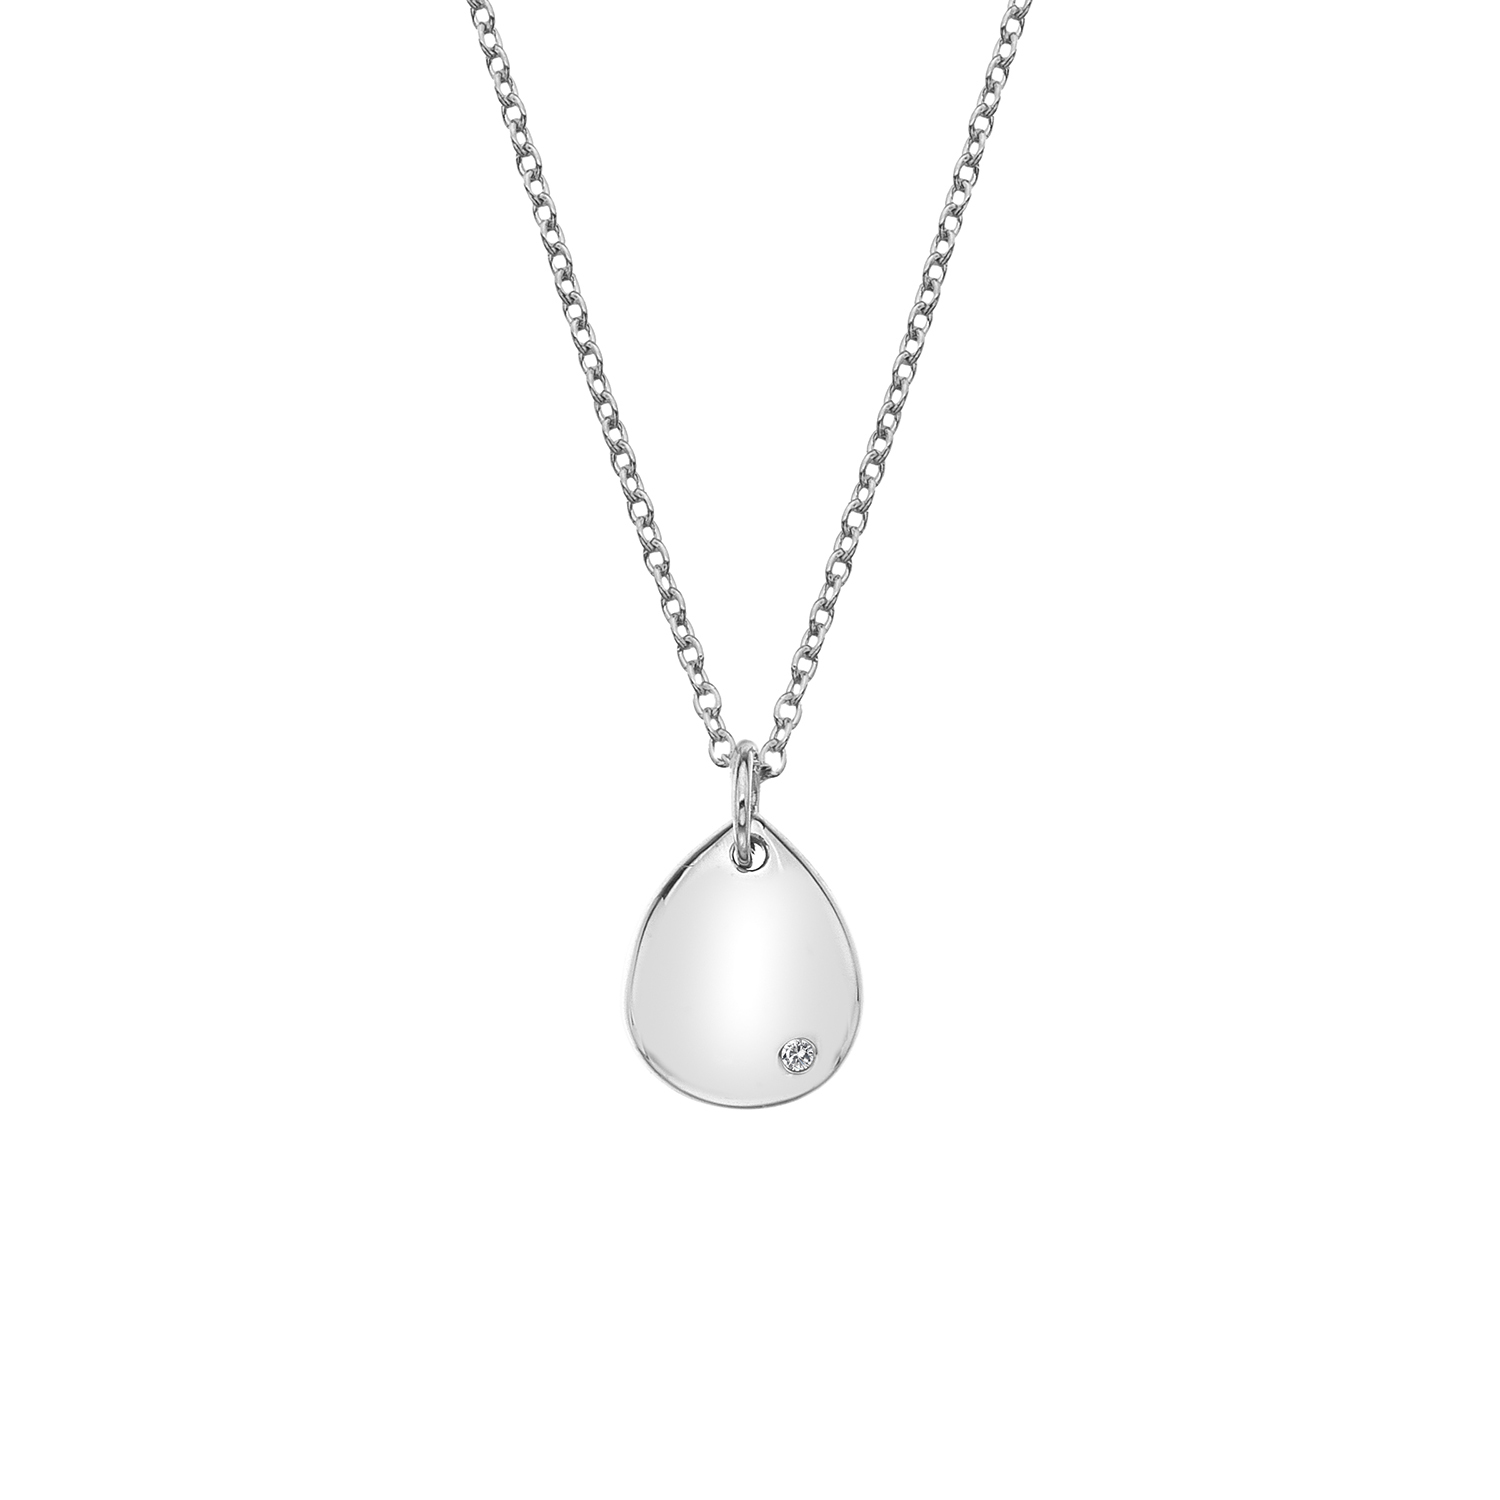 Silver pear shaped domed pendant - Carats Jewellers